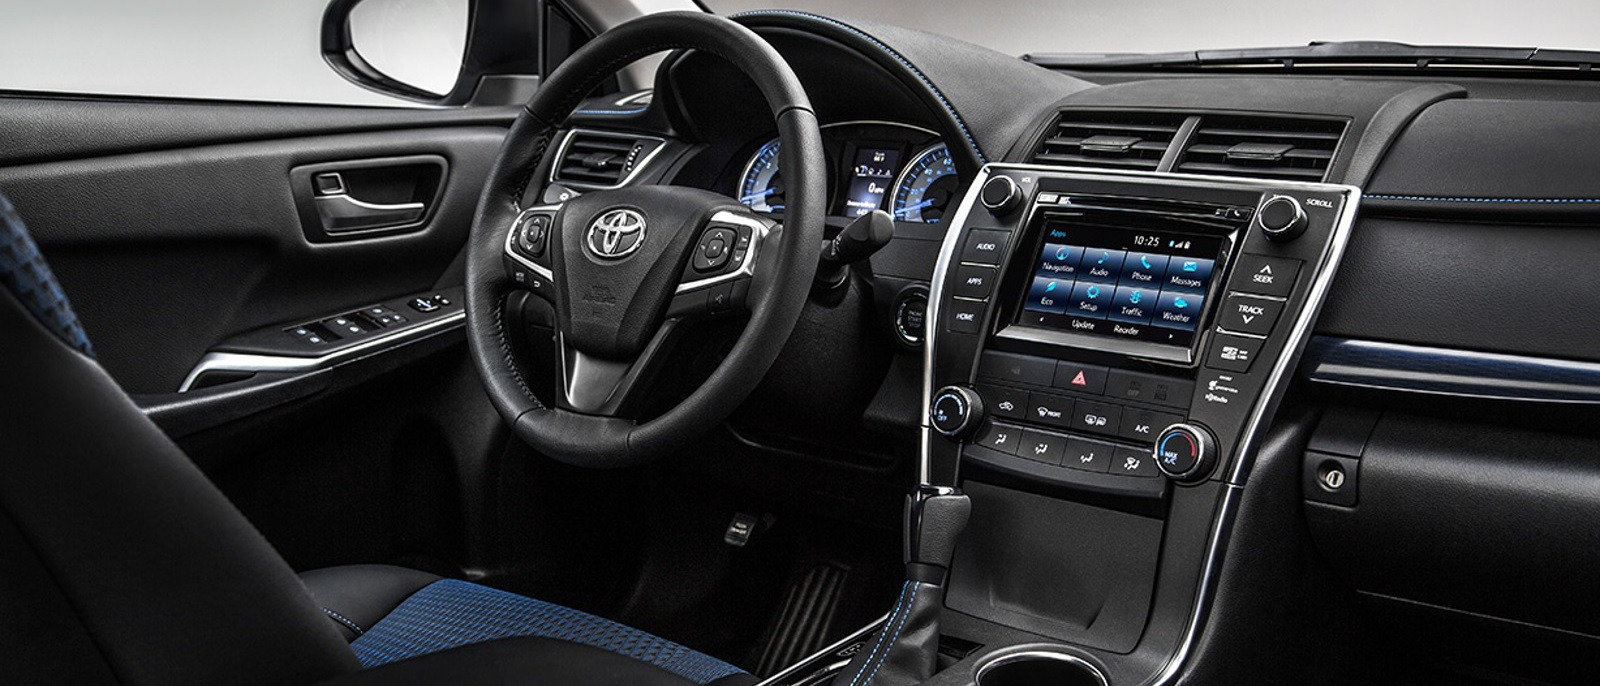 2016 toyota camry palm beach jupiter earl stewart toyota. Black Bedroom Furniture Sets. Home Design Ideas